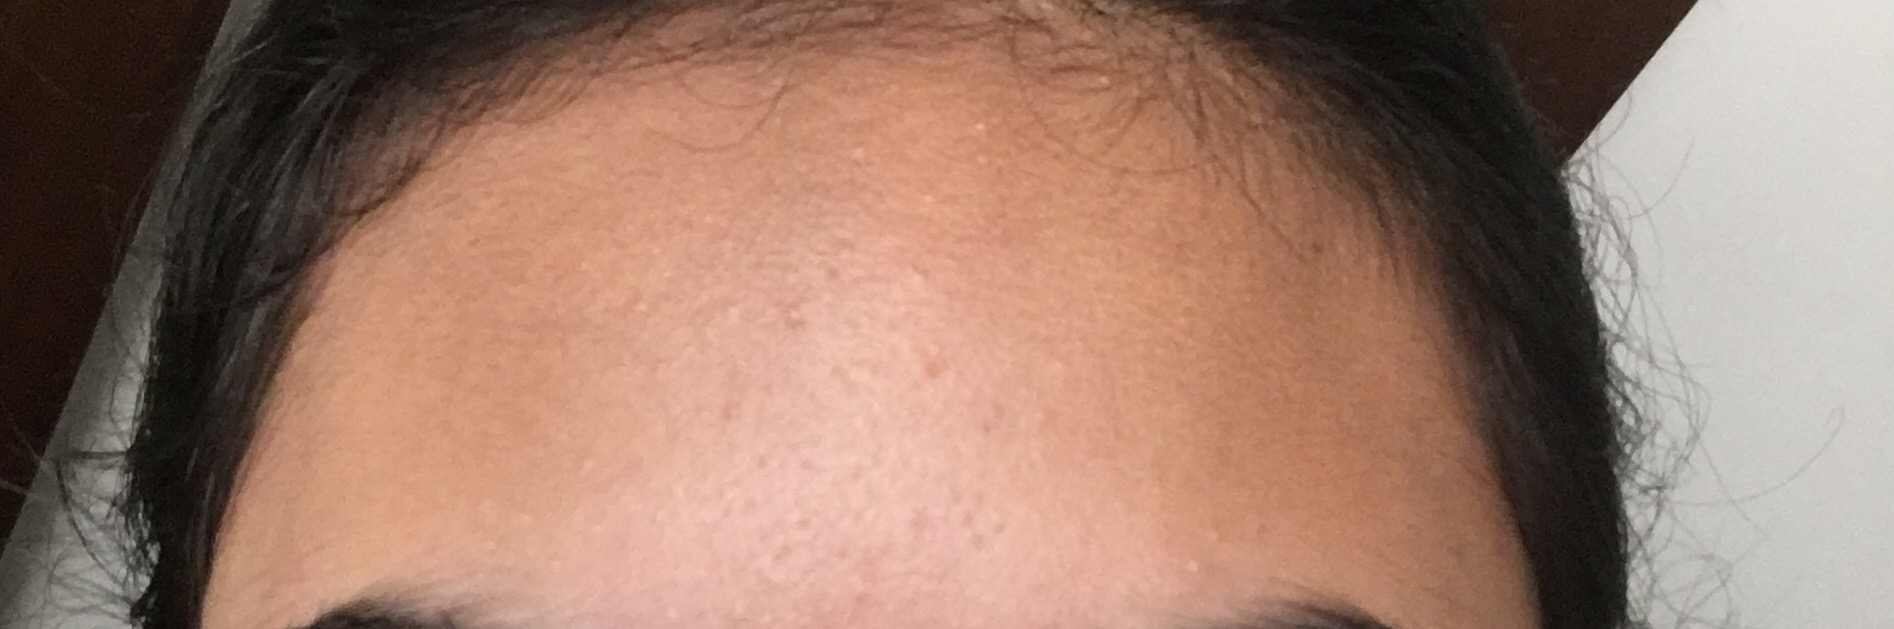 Fungal Acne Malessezia Folliculitis Pity Ask A Doctor Online